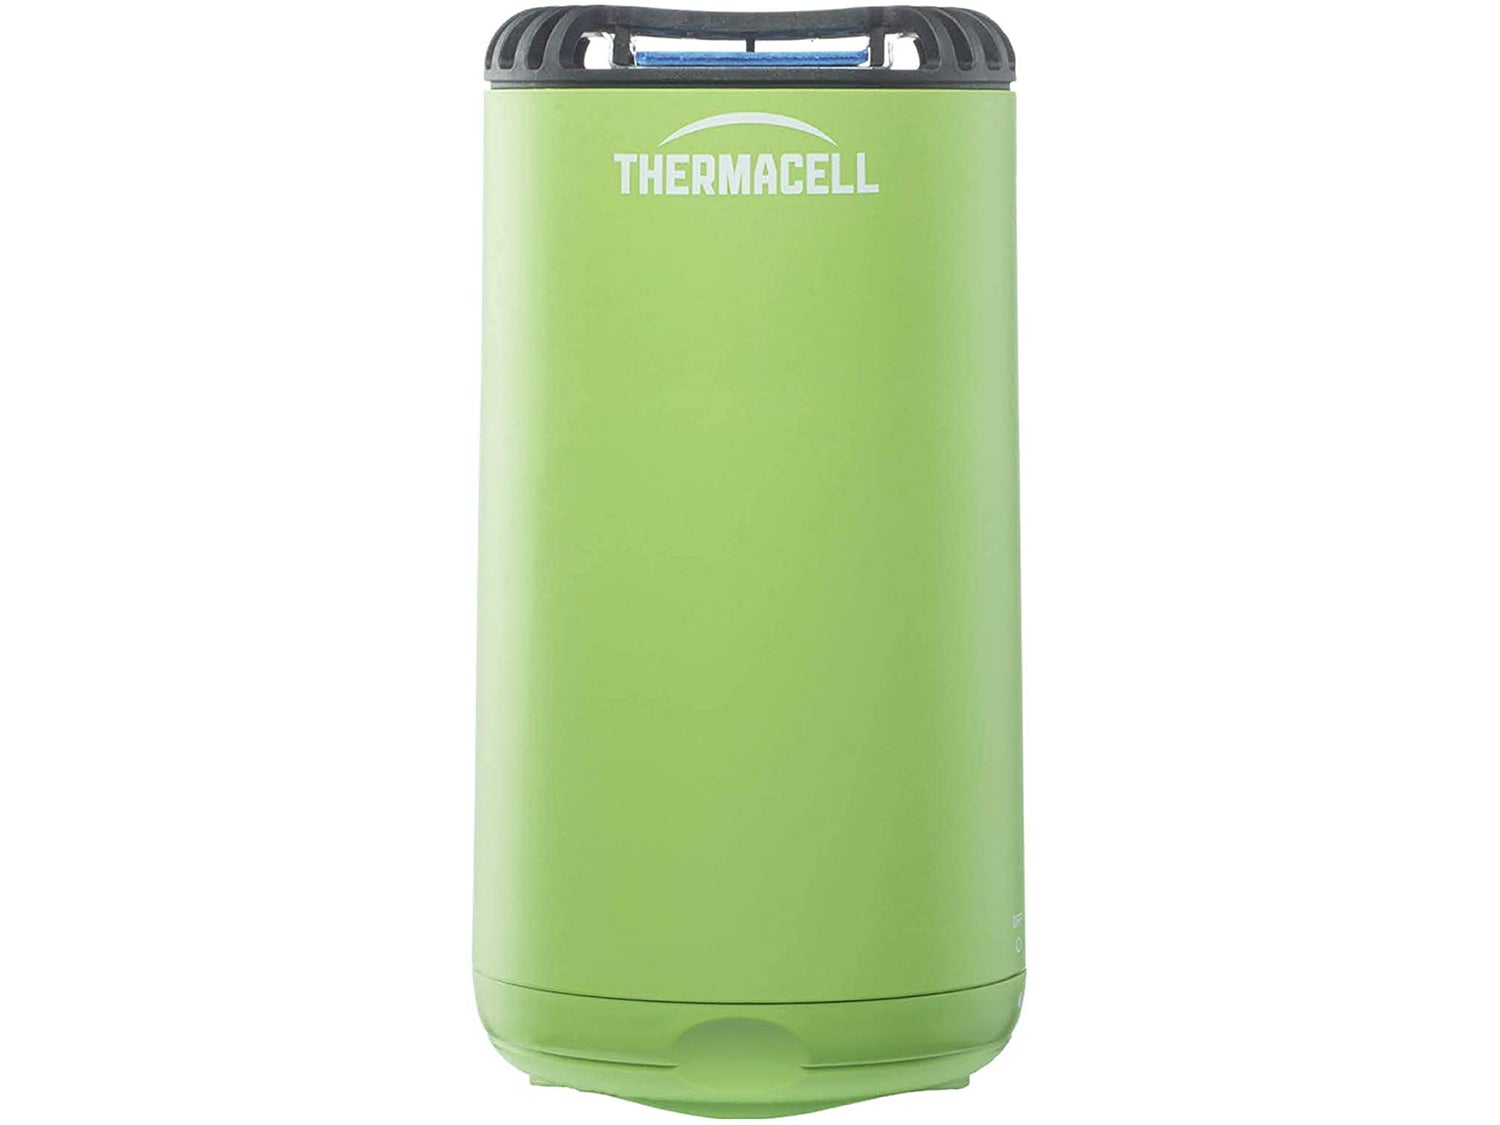 Thermacell Patio Shield Mosquito Repellent, Greenery Green; Easy to Use, Highly Effective; Provides 12 Hours of DEET-Free Mosquito Repellent; Scent-Free, No Spray, No Smoke and Cordless